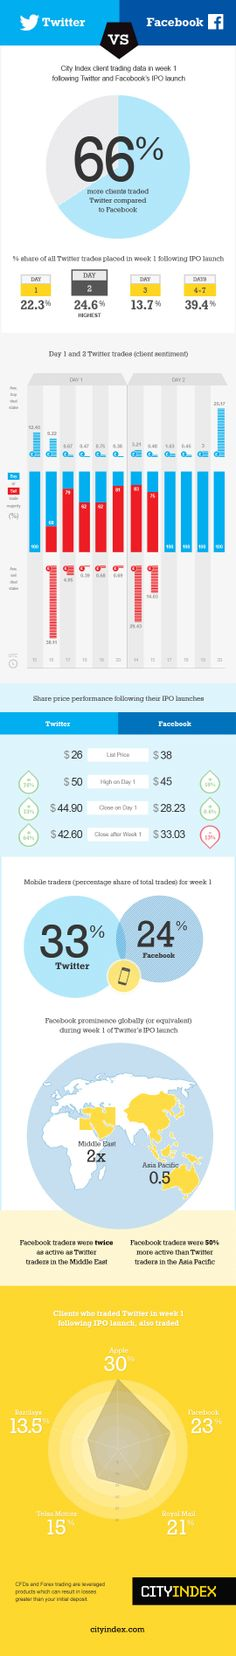 Twitter vs Facebook: Twitter outperforms Facebook during first week of trading